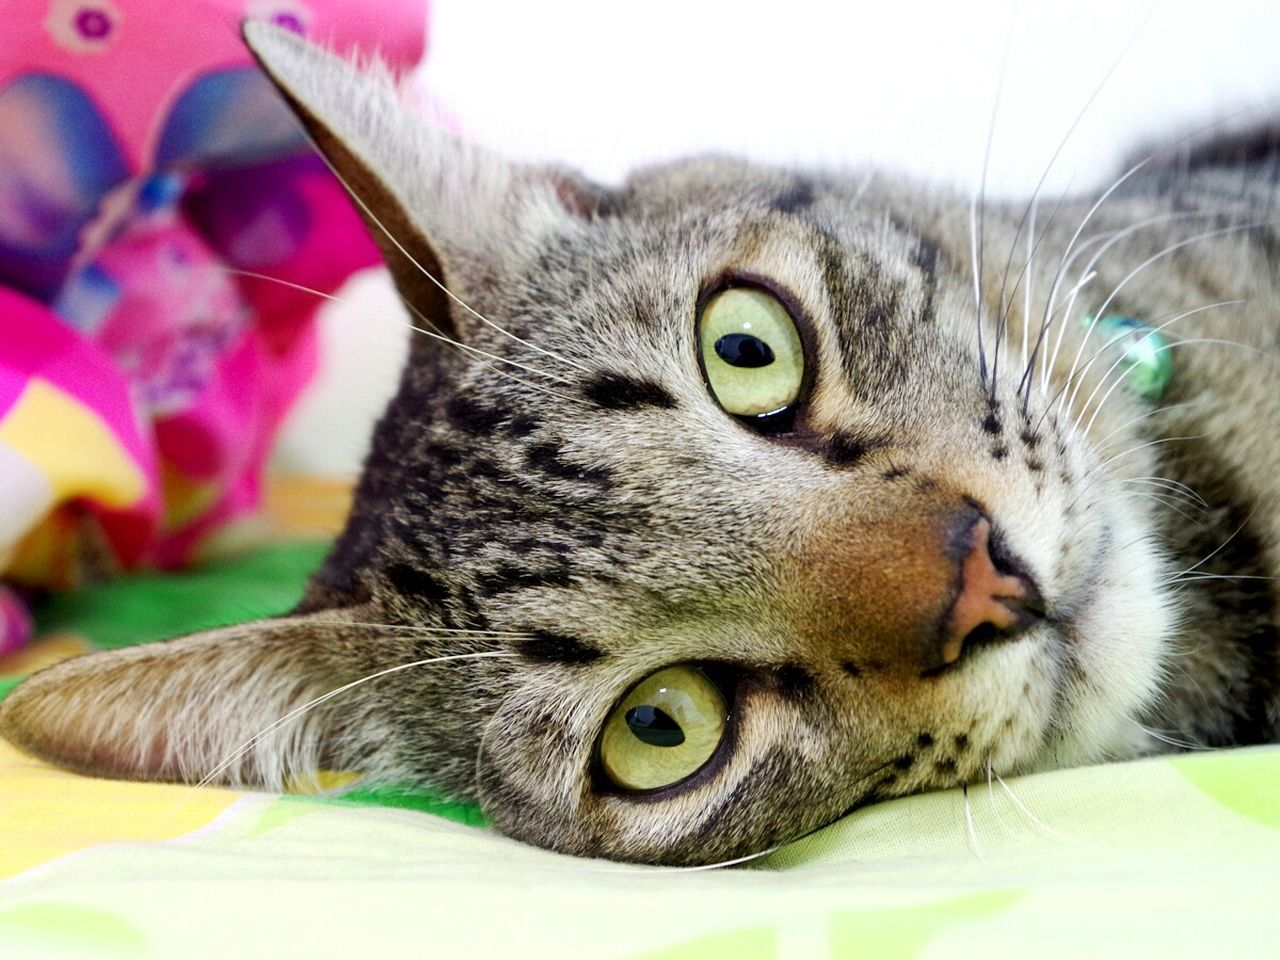 Pets Domestic Cat Domestic Animals One Animal Close-up Indoors  Animal Themes Portrait No People Ocicat Ocica Catface